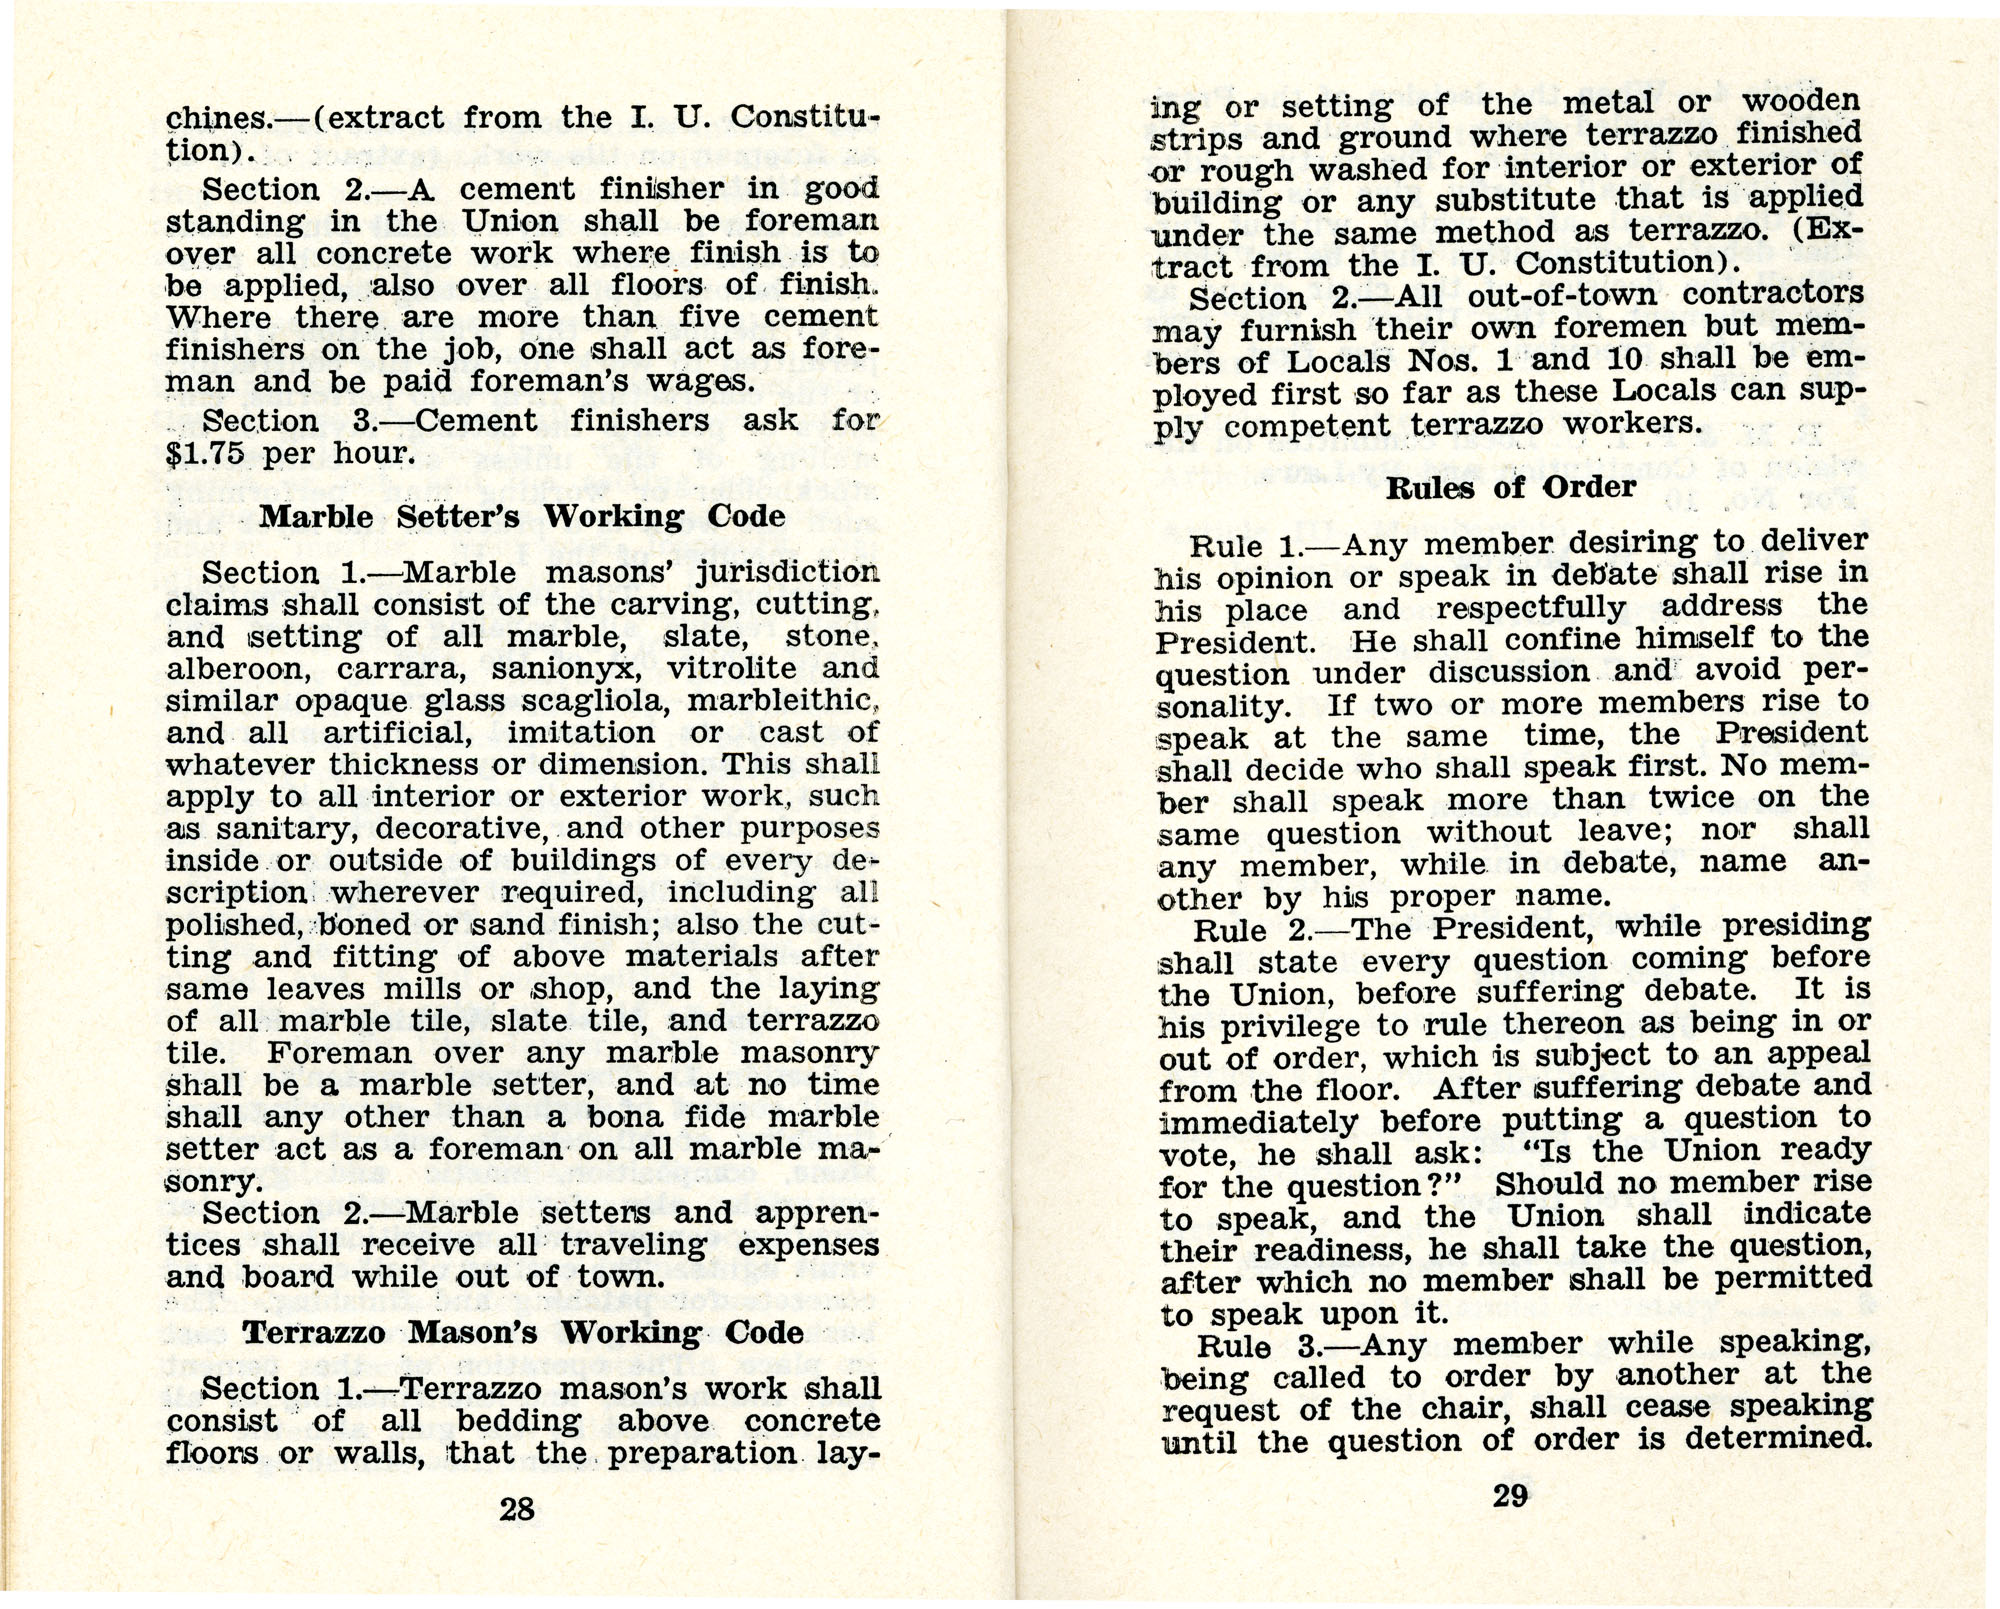 Constitution and by-laws of unions no.1 and 10, Page 15